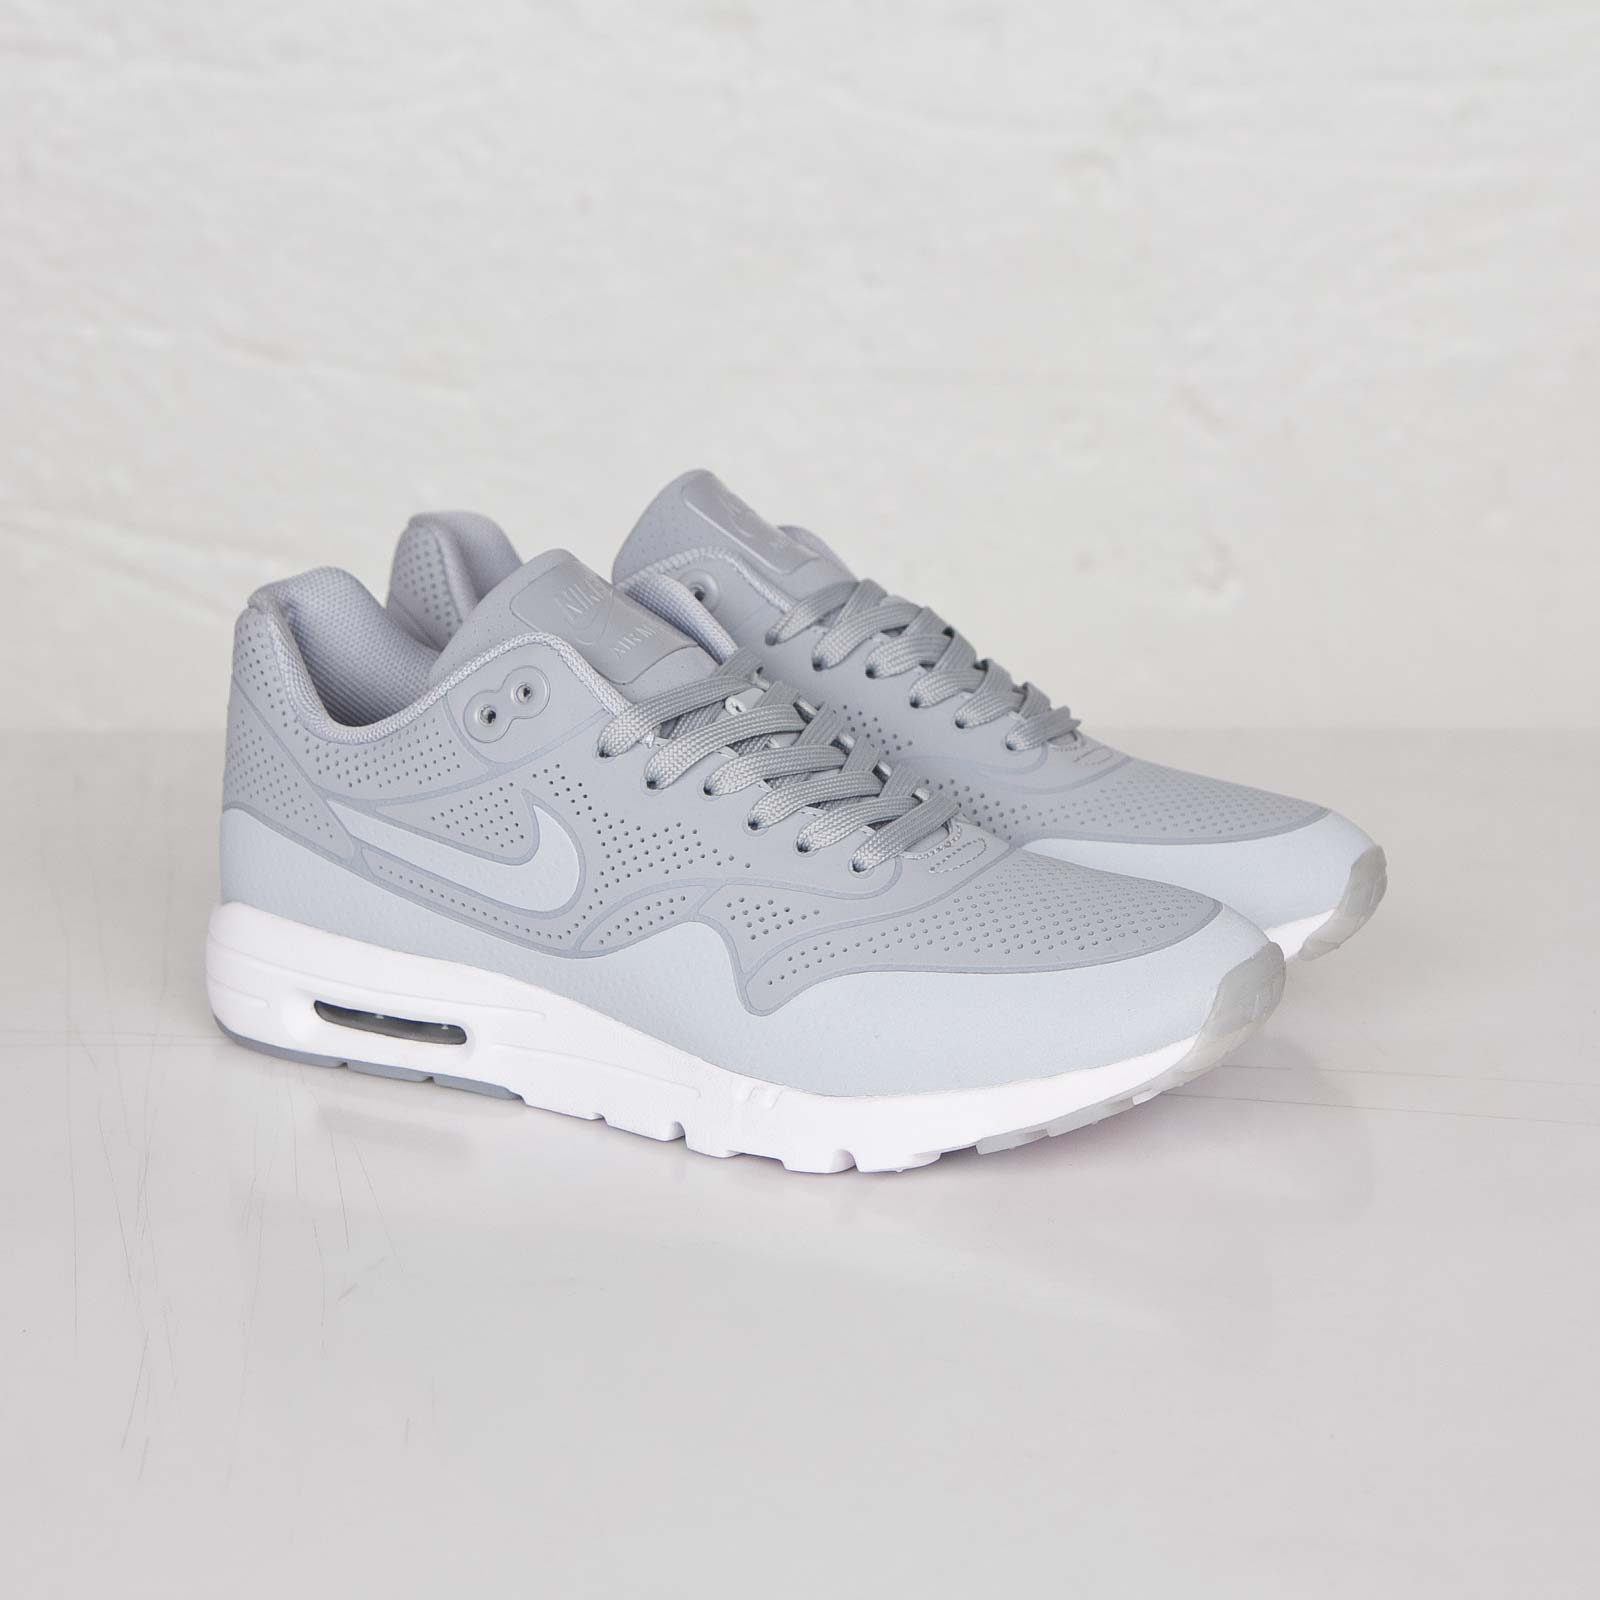 6eac3837bbdeb0 Nike Wmns Air Max 1 Ultra Moire - 704995-002 - Sneakersnstuff ...